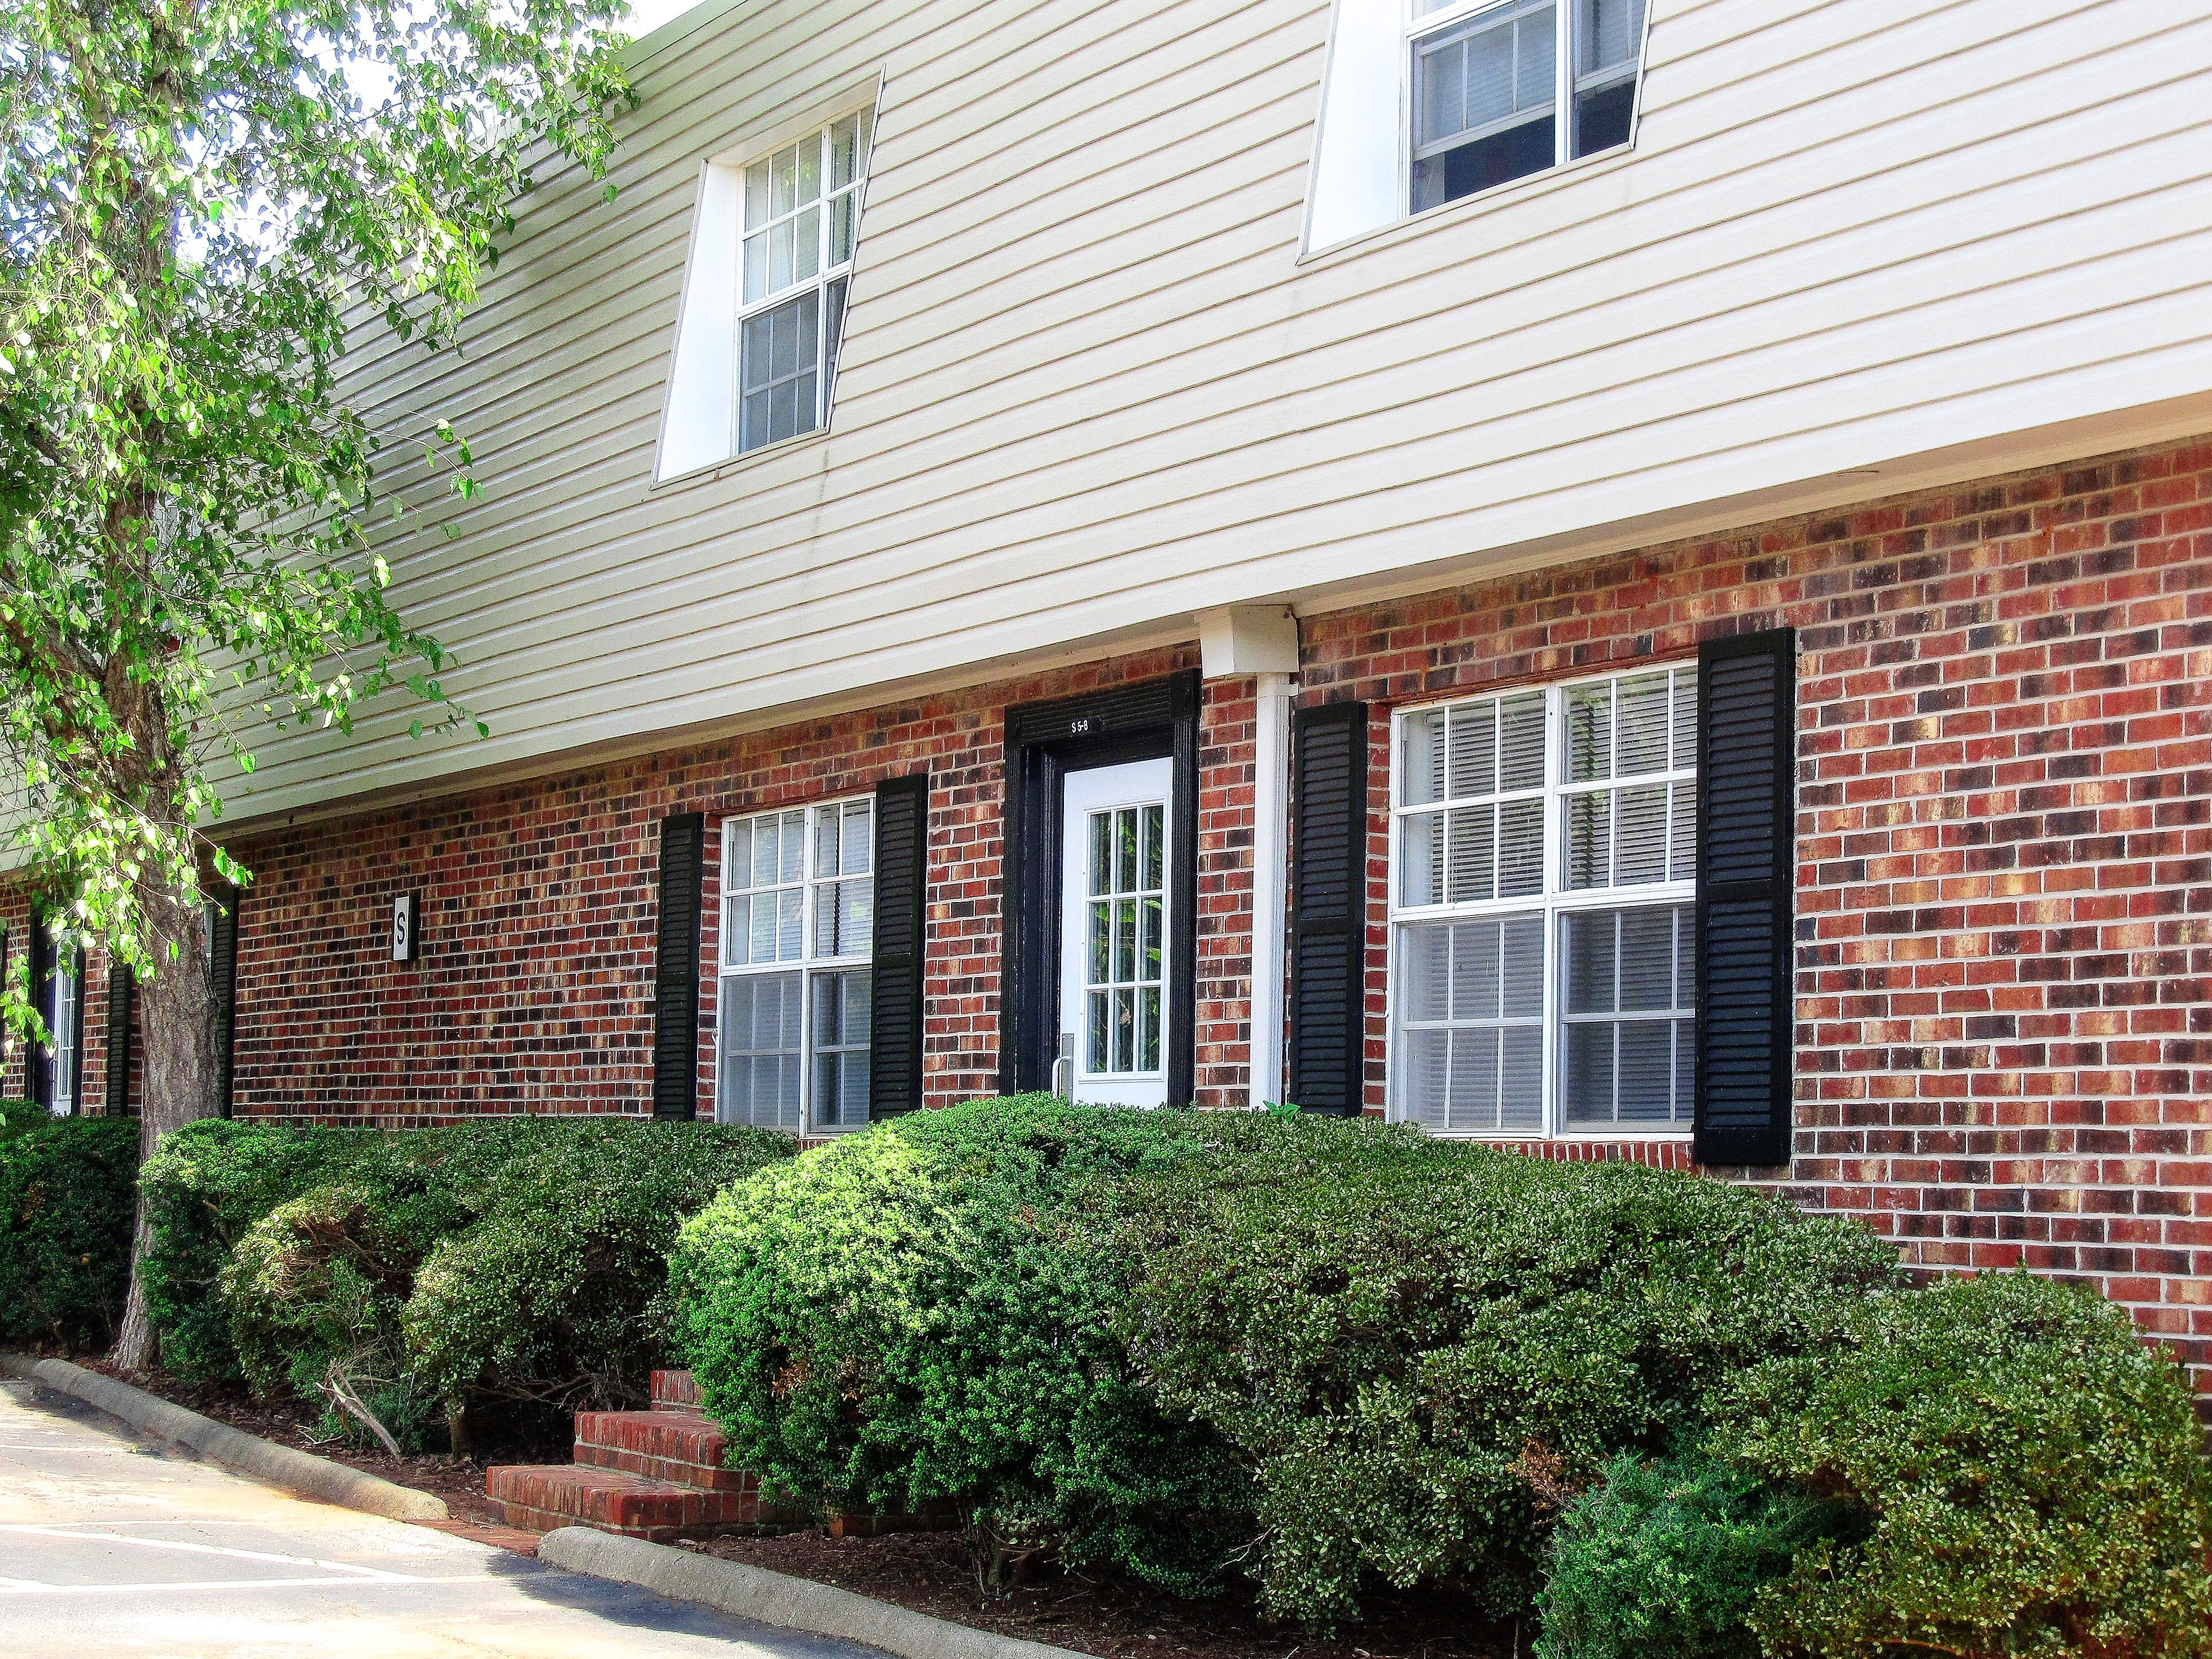 Hunting Ridge Apartments Greenville Sc Outdoor Decor Outdoor Apartment